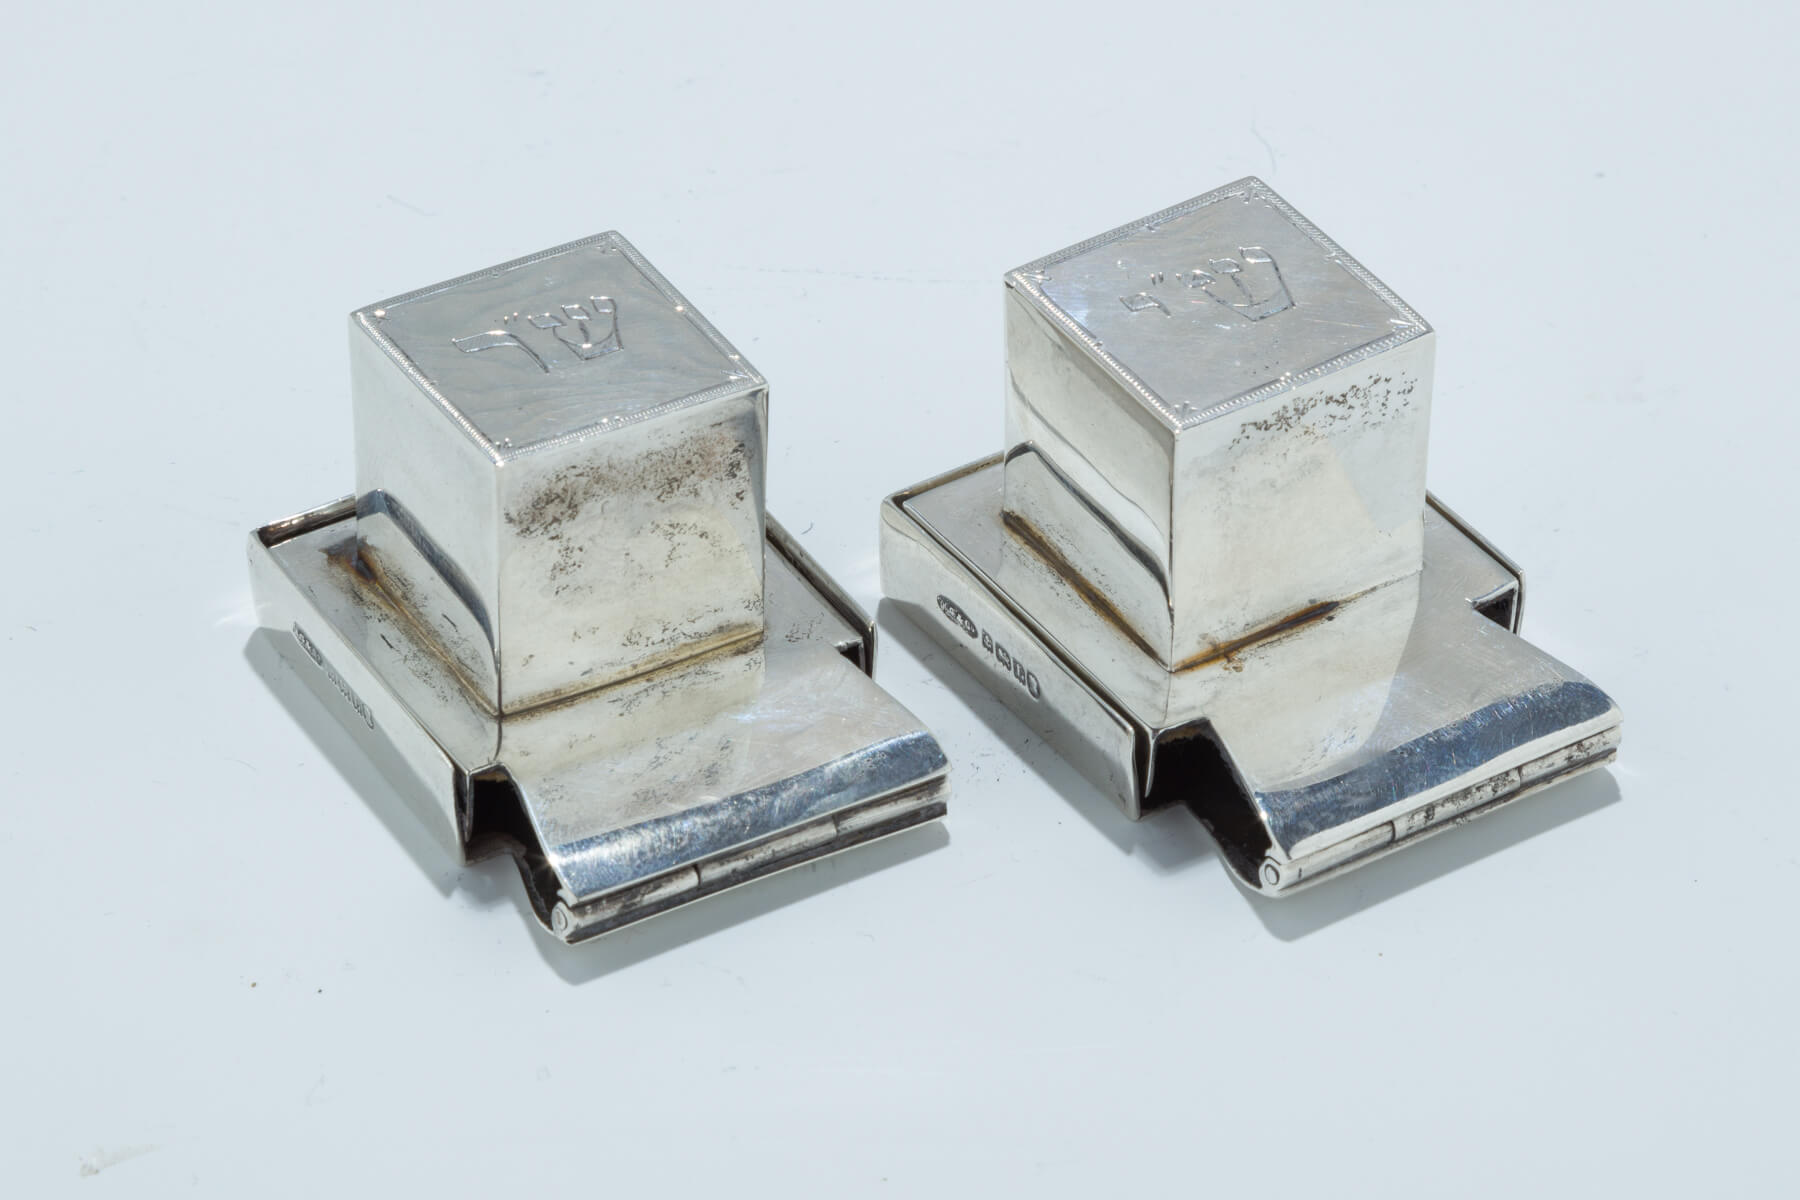 113. A Pair of Sterling Silver Tefillin Boxes by Britton, Gould and Company